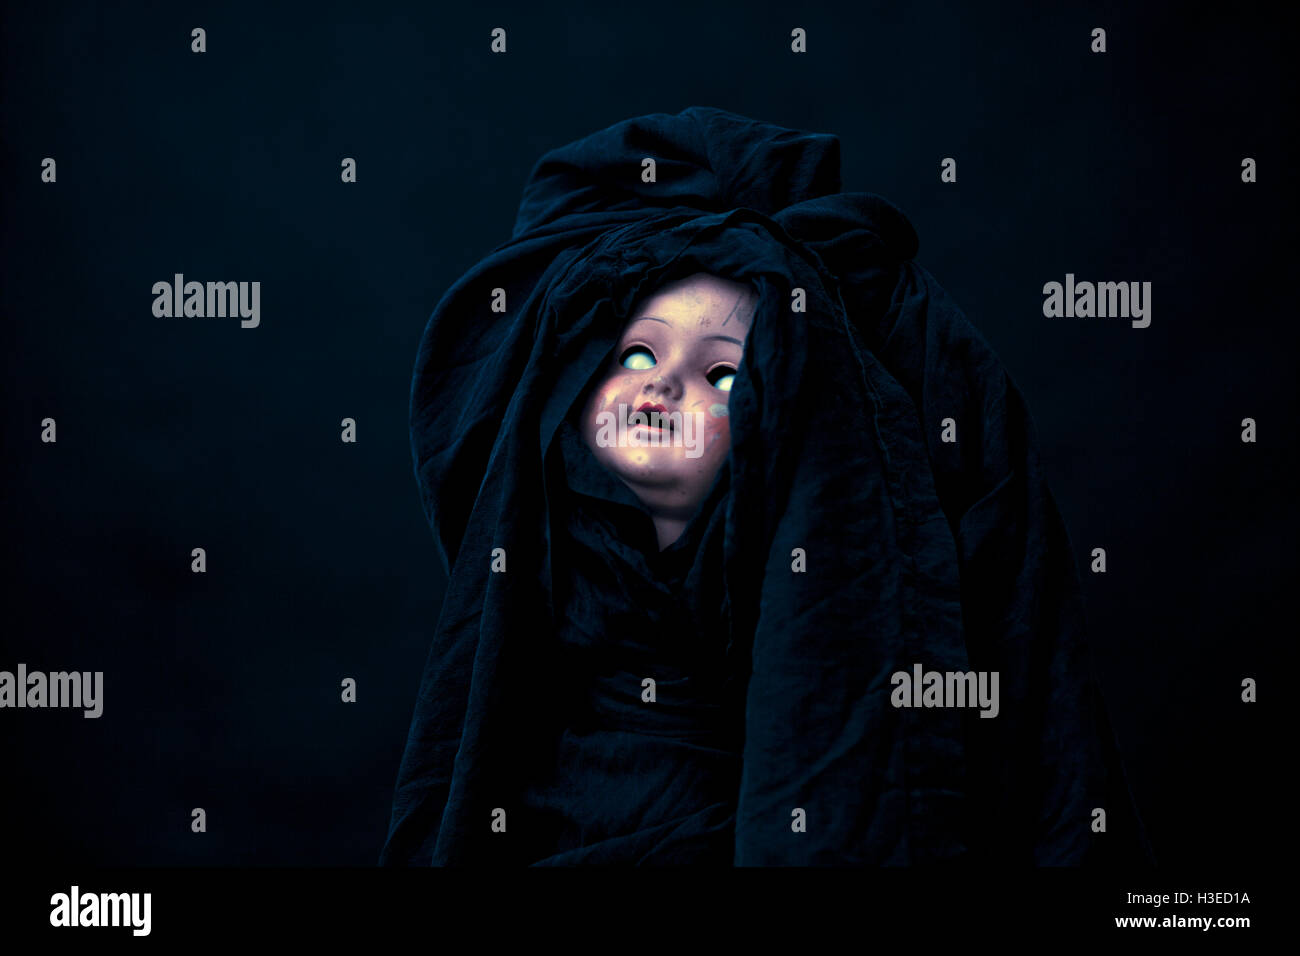 Creepy doll - Stock Image